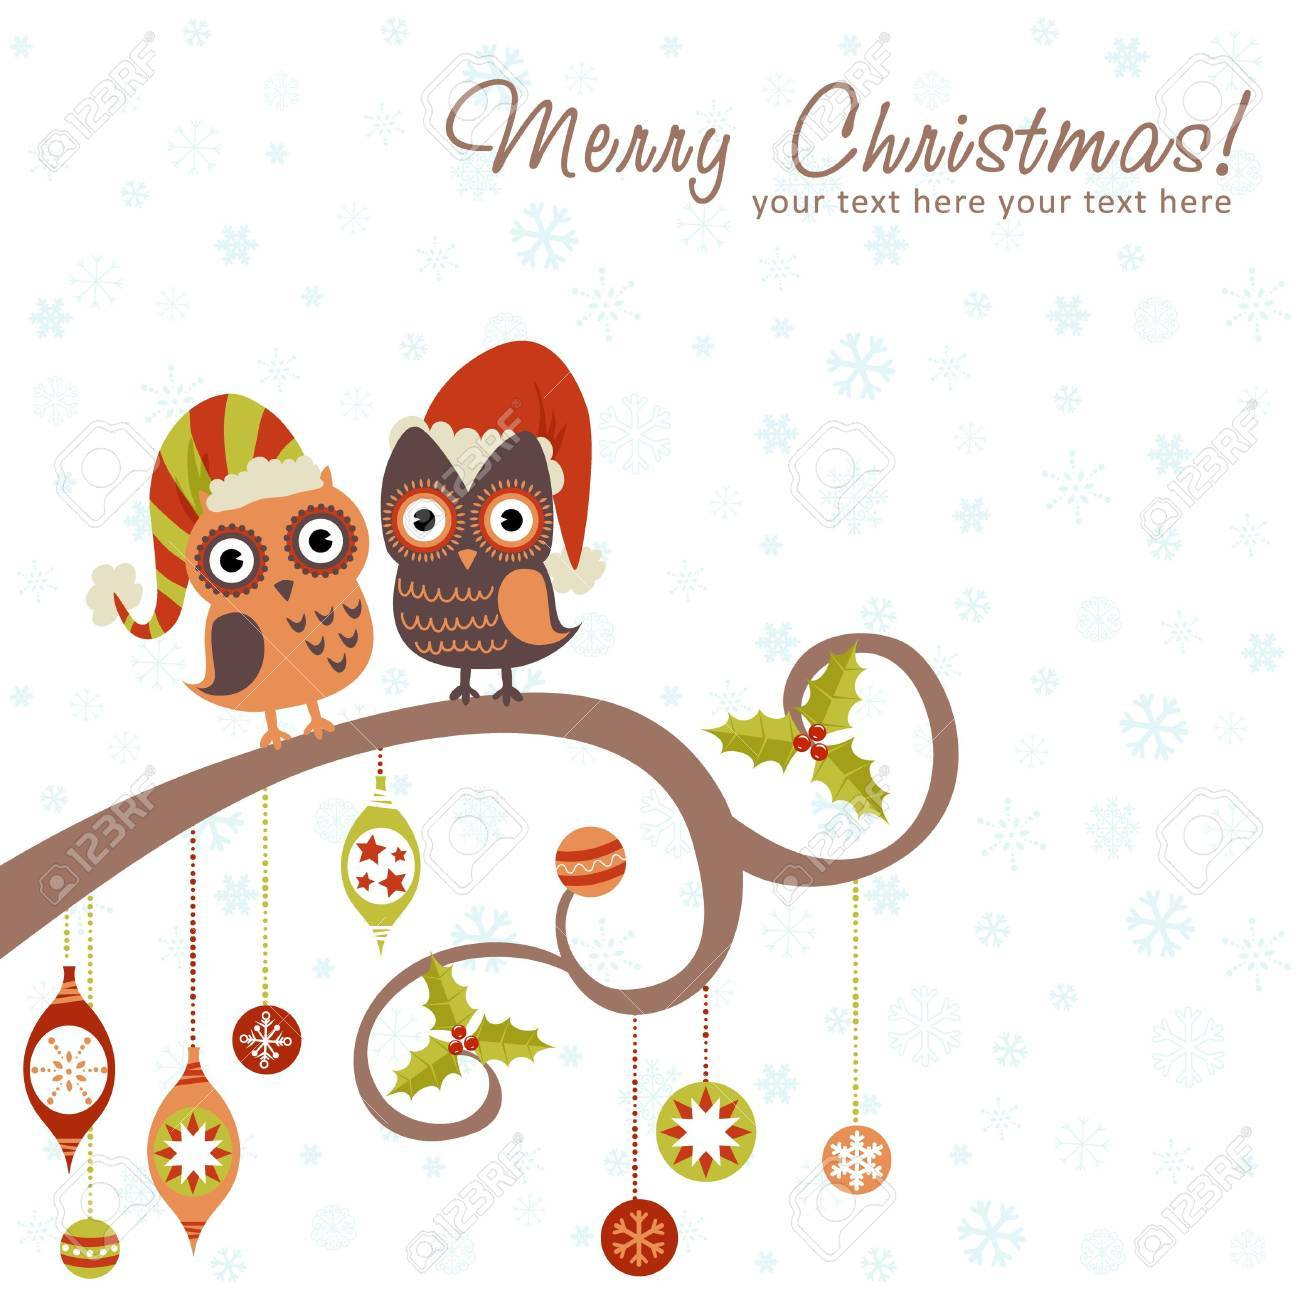 Cute winter Christmas card of owls in hats sitting on a tree branch with ball toys Stock Vector - 16424307